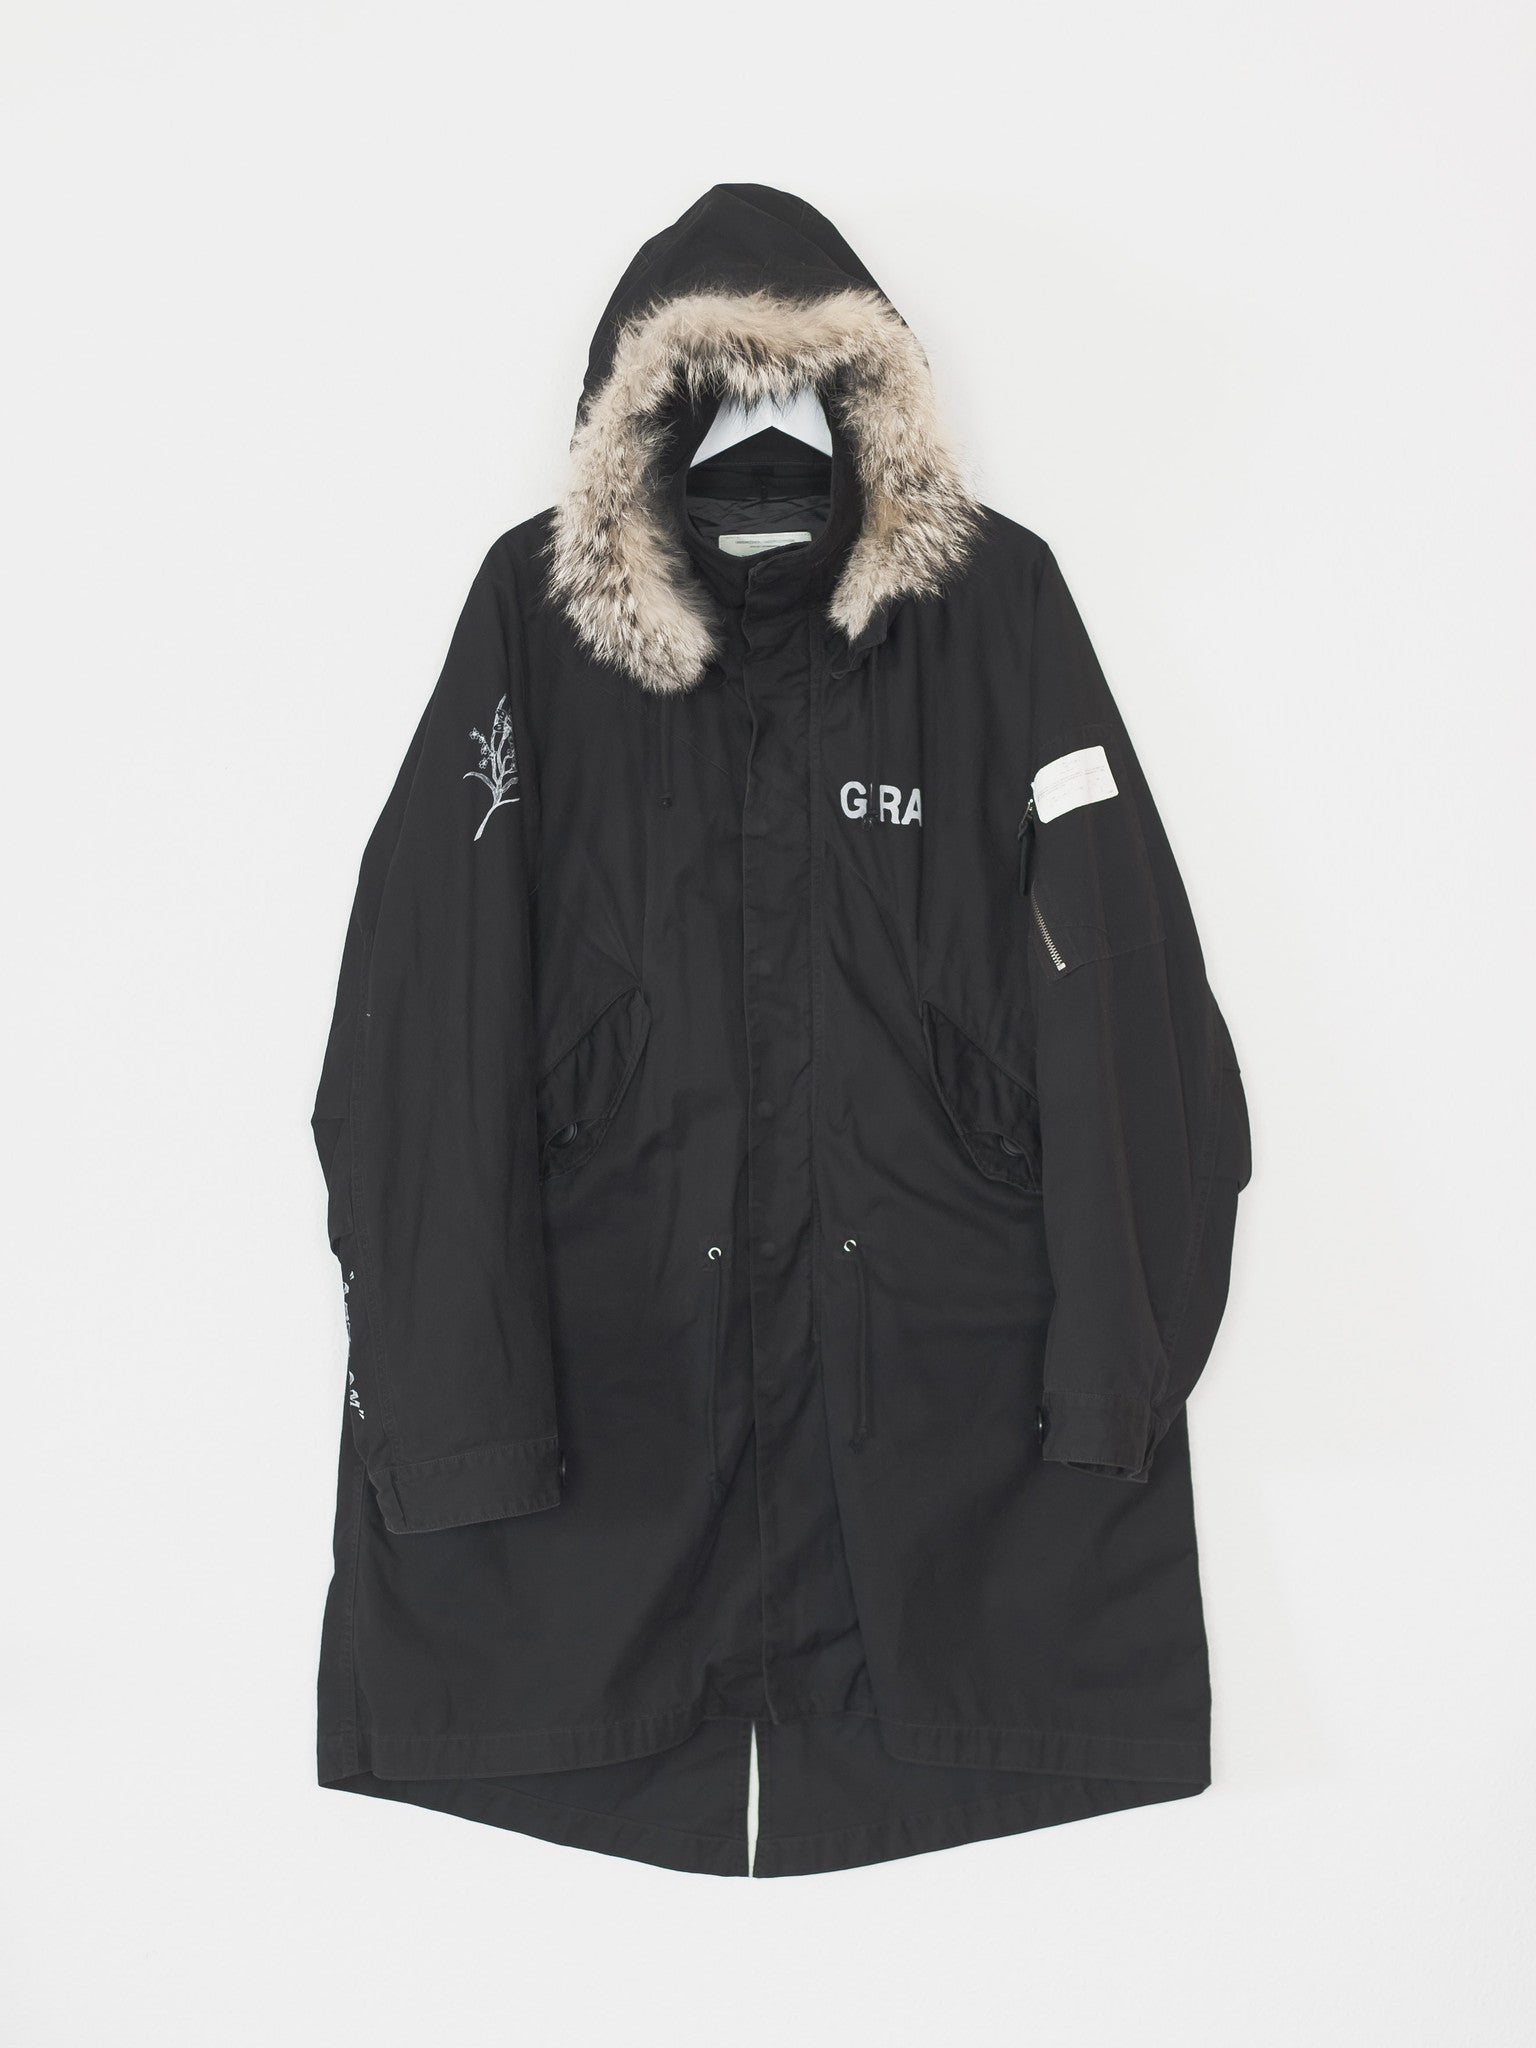 Undercover can parka